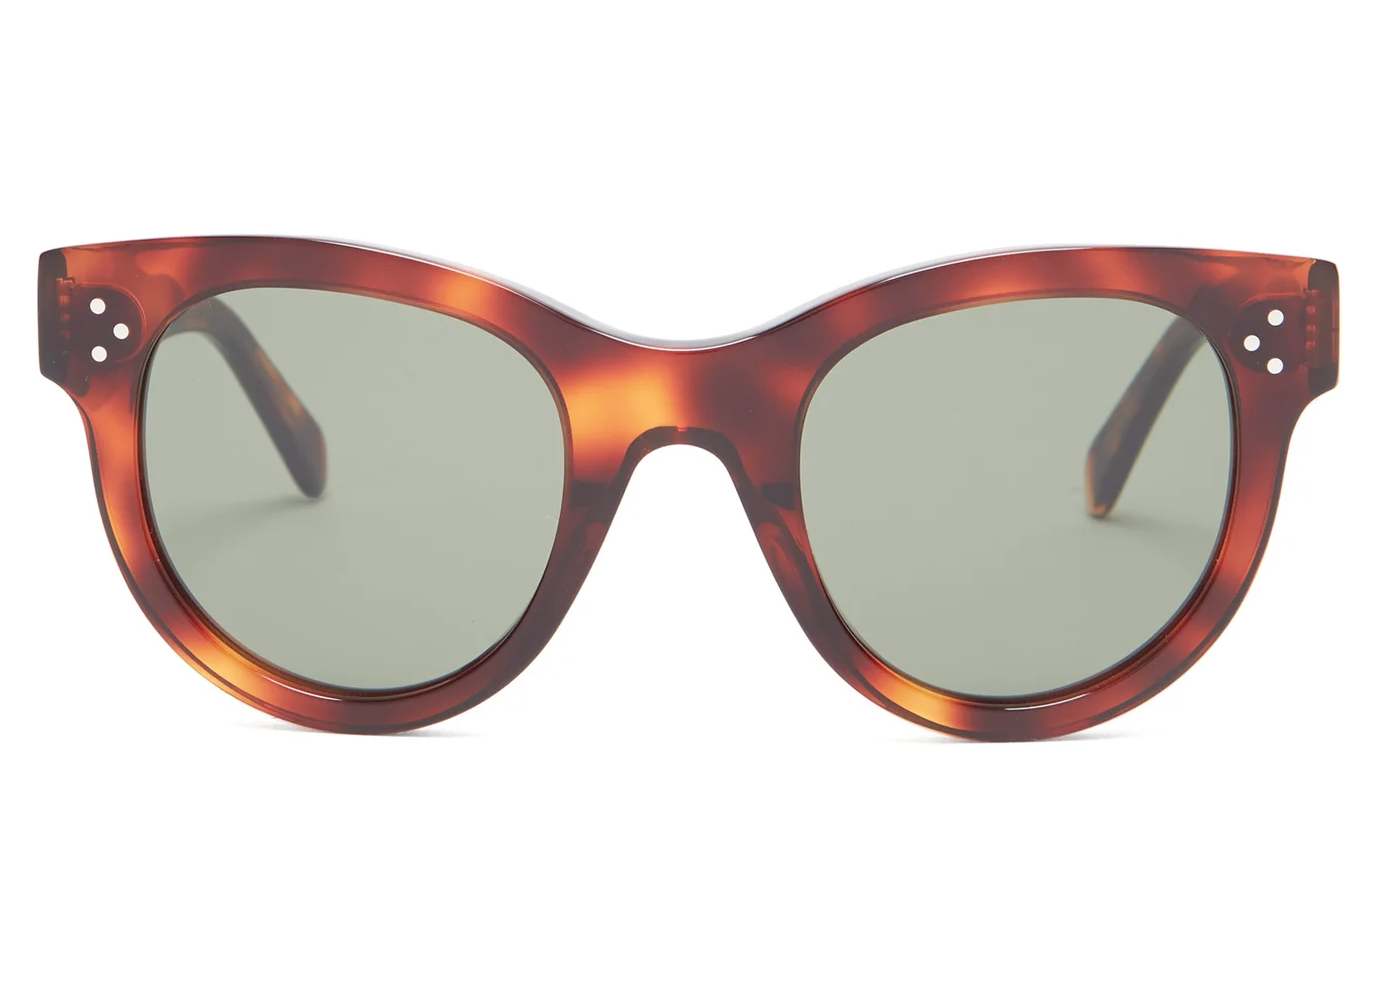 Celine Eyewear Baby Audrey cat-eye acetate sunglasses